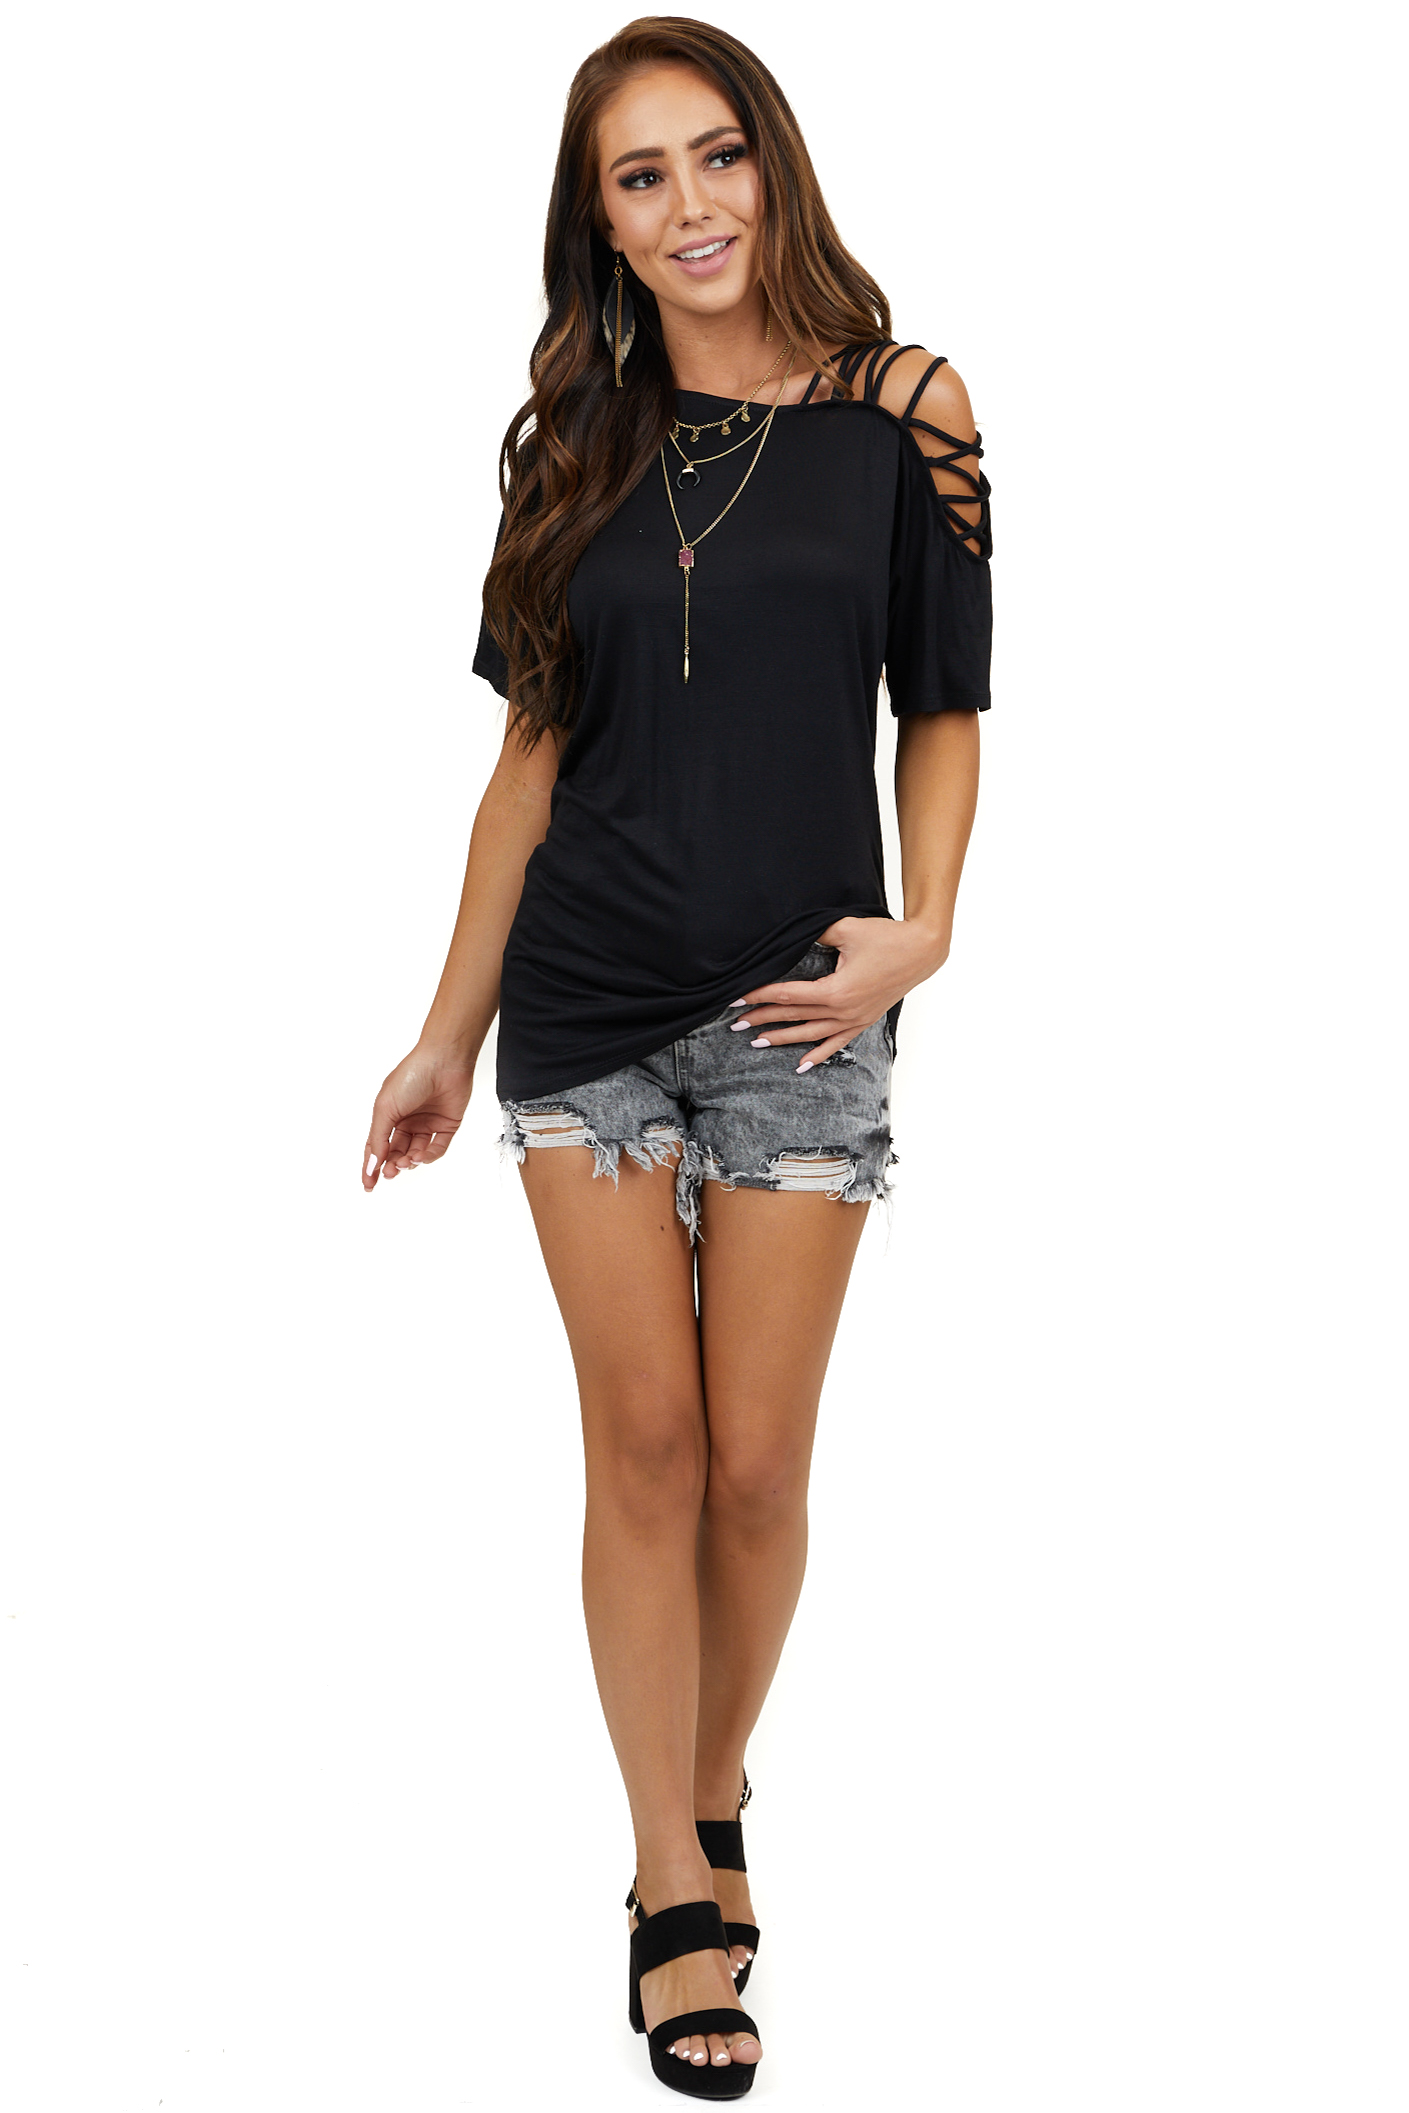 Black Top with One Cold Shoulder with Criss Cross Straps